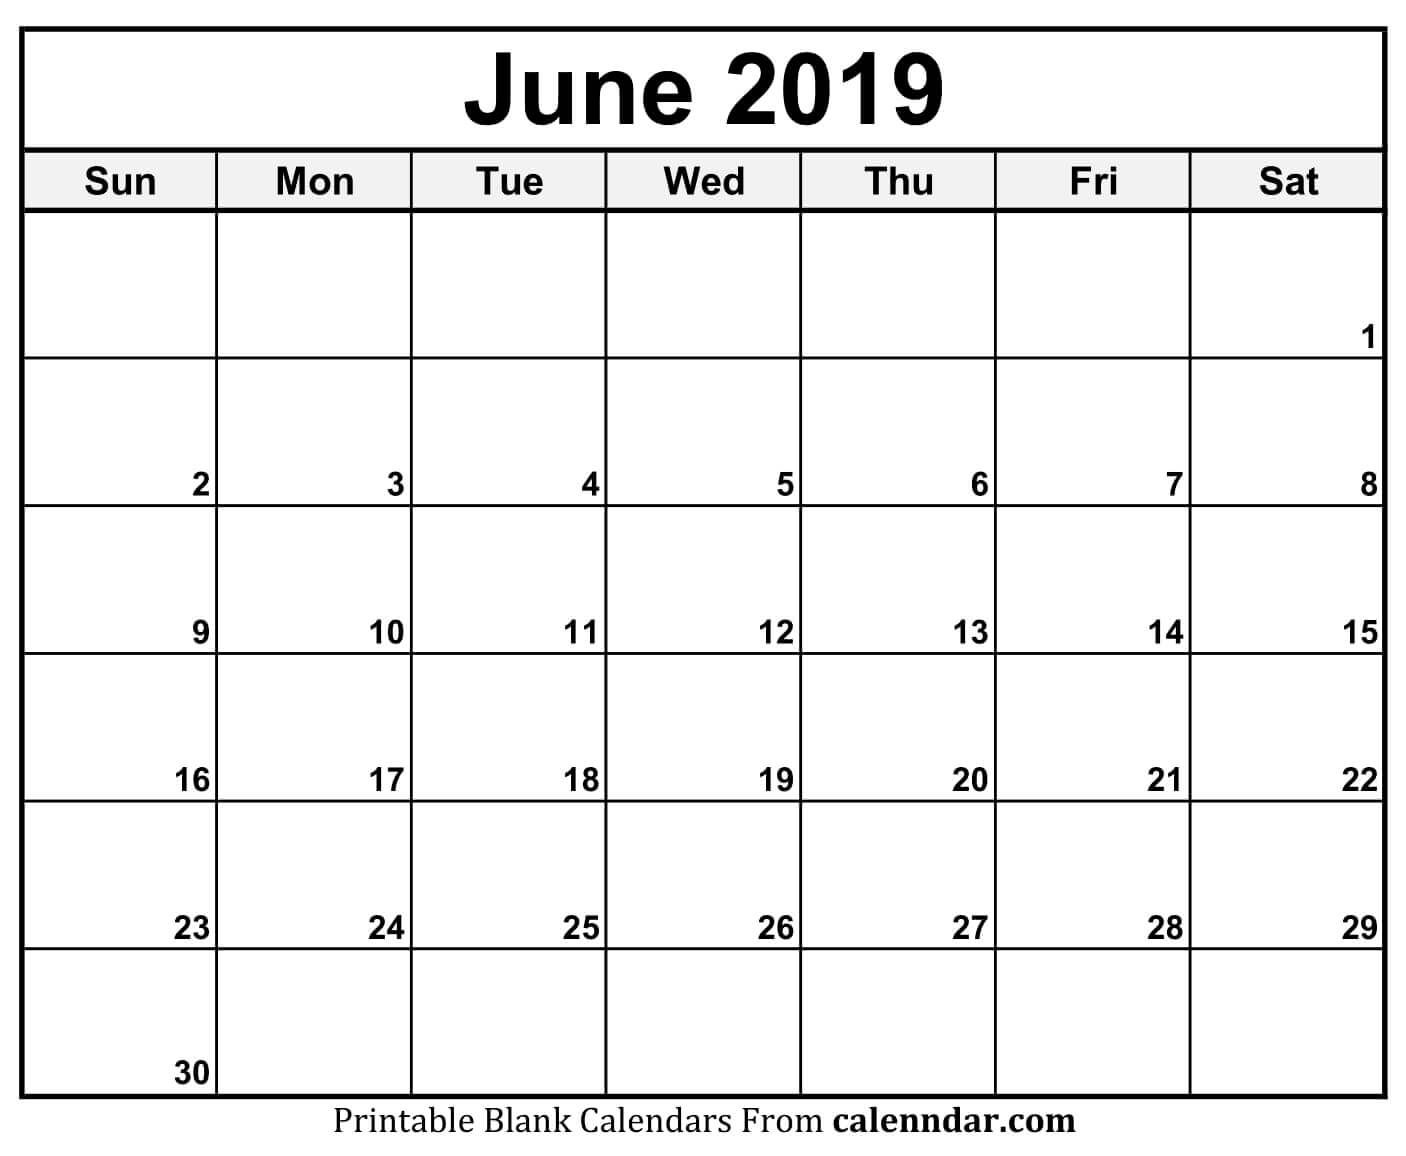 June 2019 Calendar Blank Template | Printable Monthly Calendar within Printable Blank Calendar June